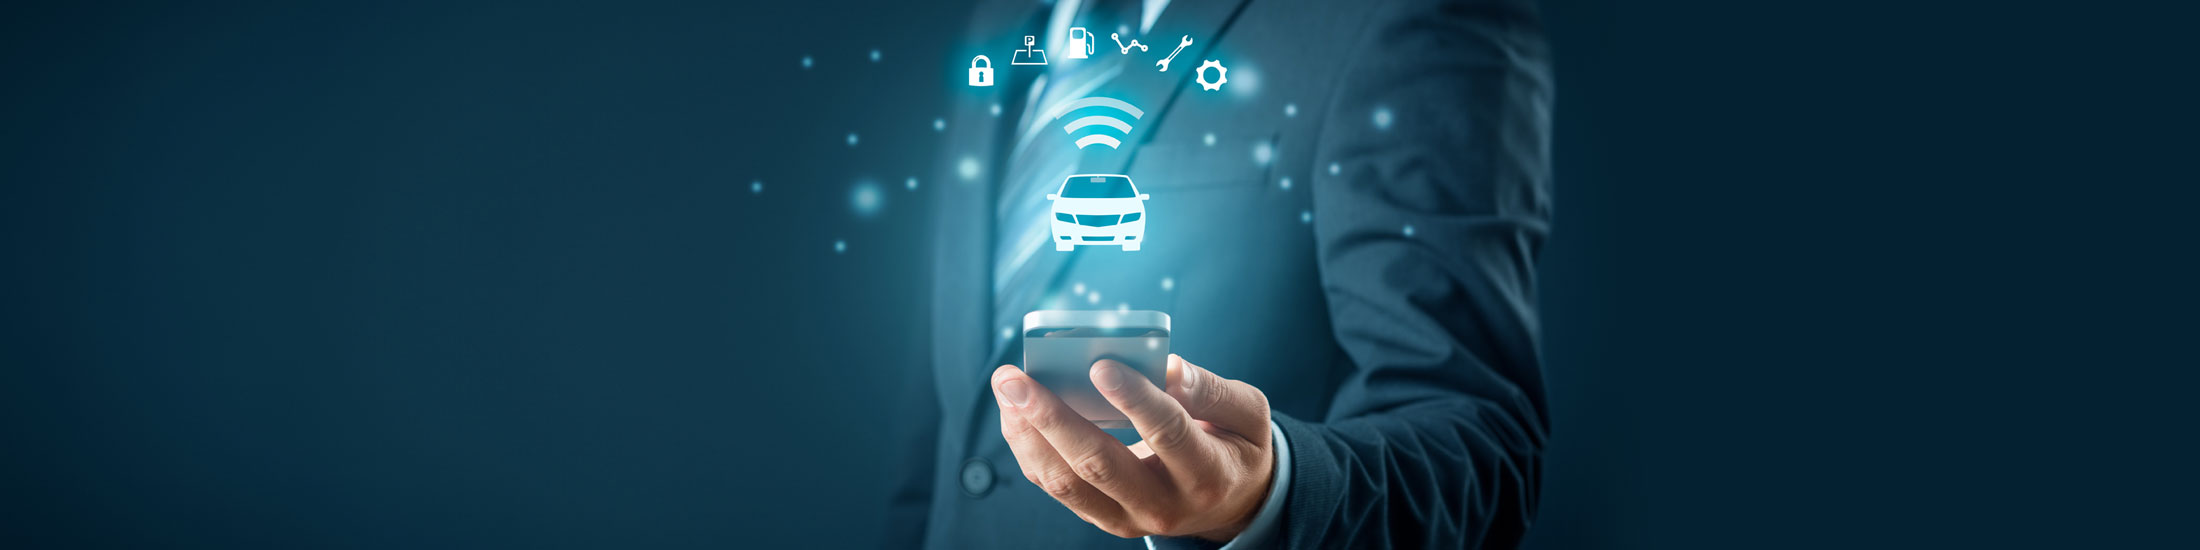 Connected Car Payments Market to Surge in the Next Decade